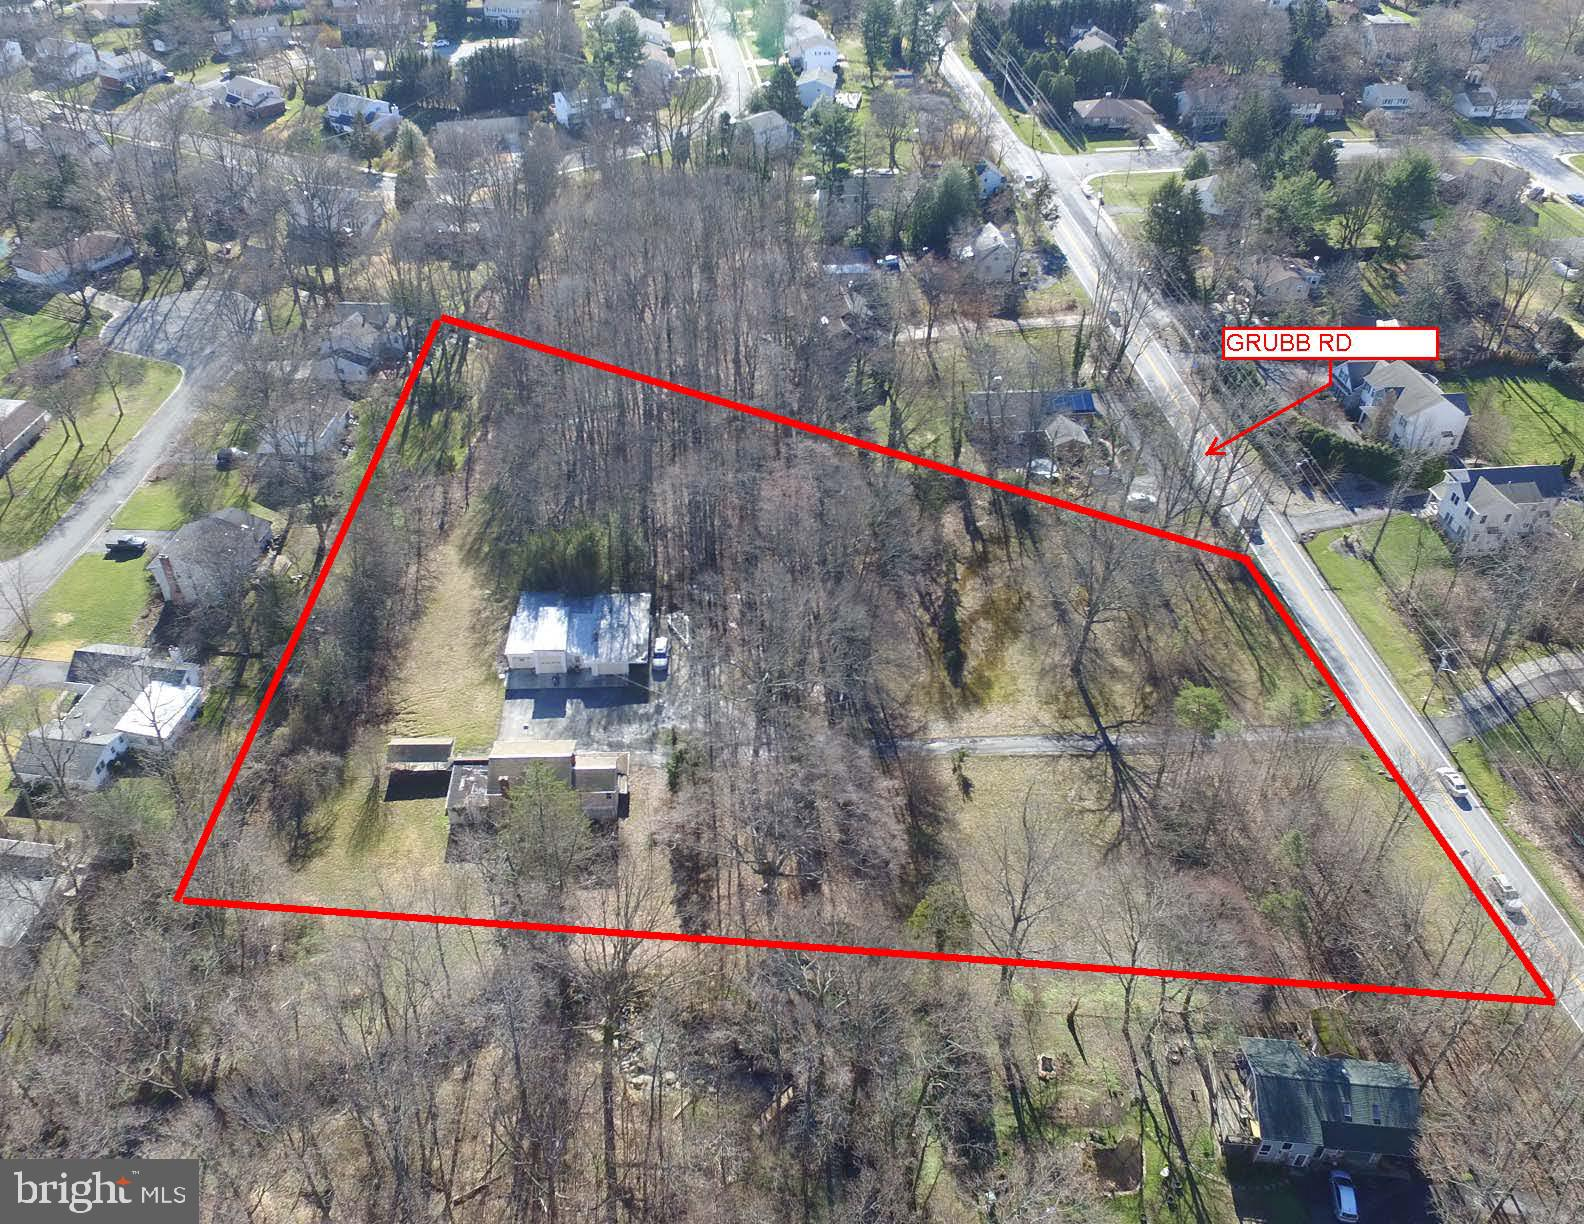 INVESTORS / BUILDERS /  CONTRACTORS- Prime 3.3 acres of land in the heart of North Wilmington. Great opportunity to subdivide out into lots.  Preliminary site plan completed showing (5) buildable lots per New Castle County zoning requirements. Property is conveniently located just off Foulk & Grubb Road intersection. House and garage are being sold AS-IS. House is in need of full renovation or tear down.  Call listing agent for additional information.